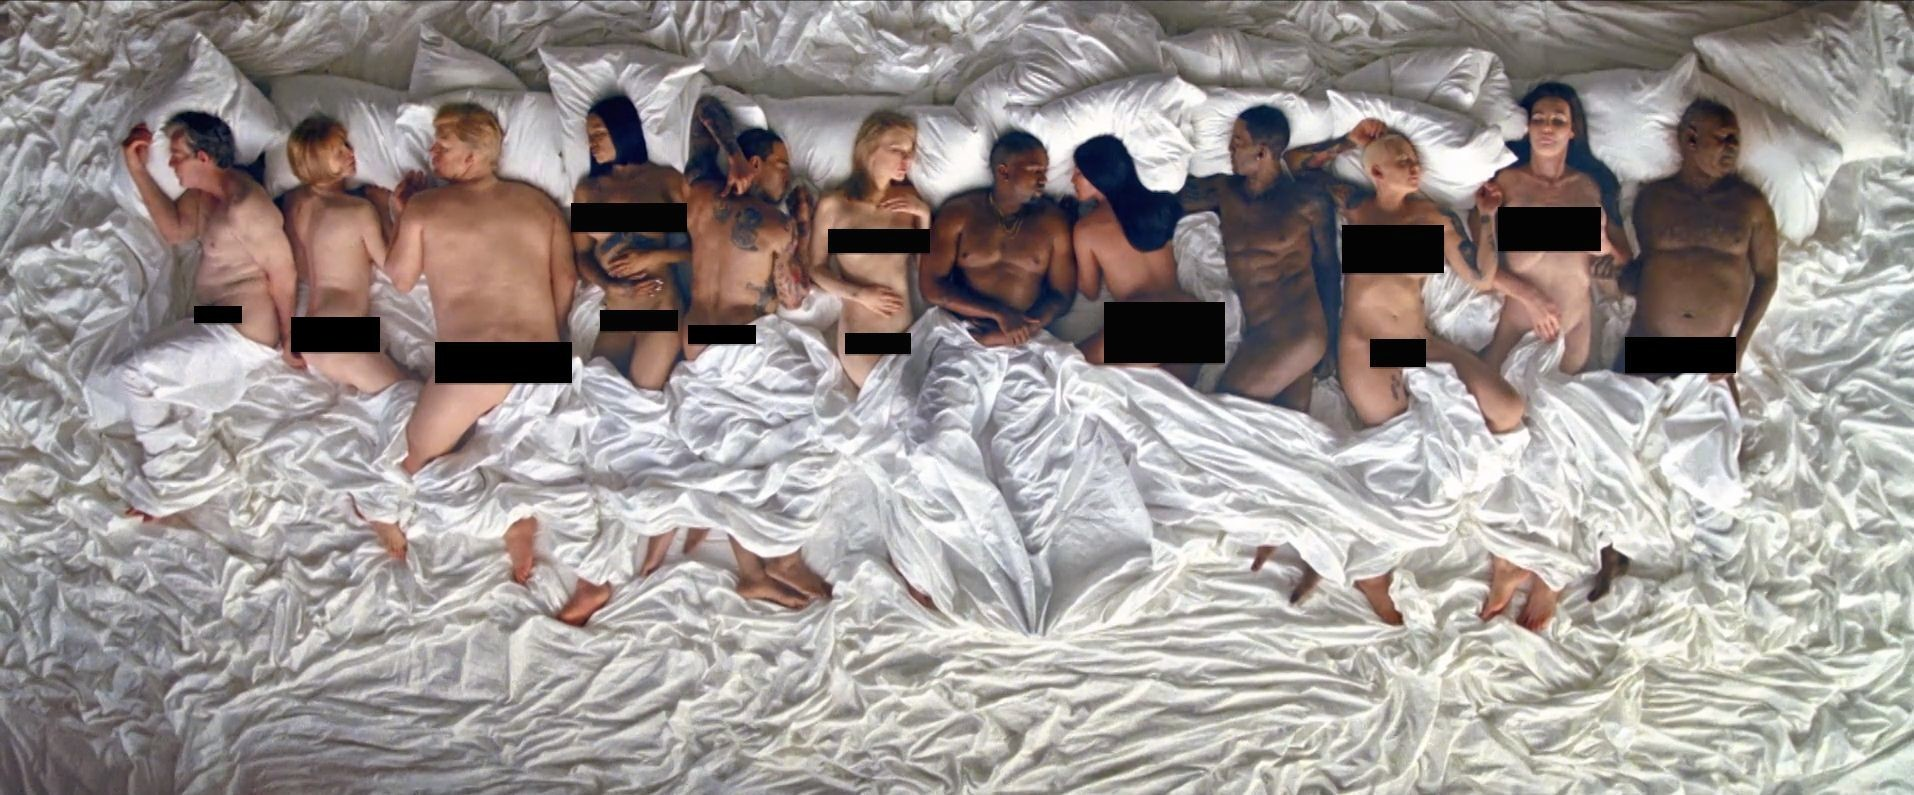 Misogyny, Rape Culture, & Everything Else That's Wrong With Kanye's 'Famous' Music Video